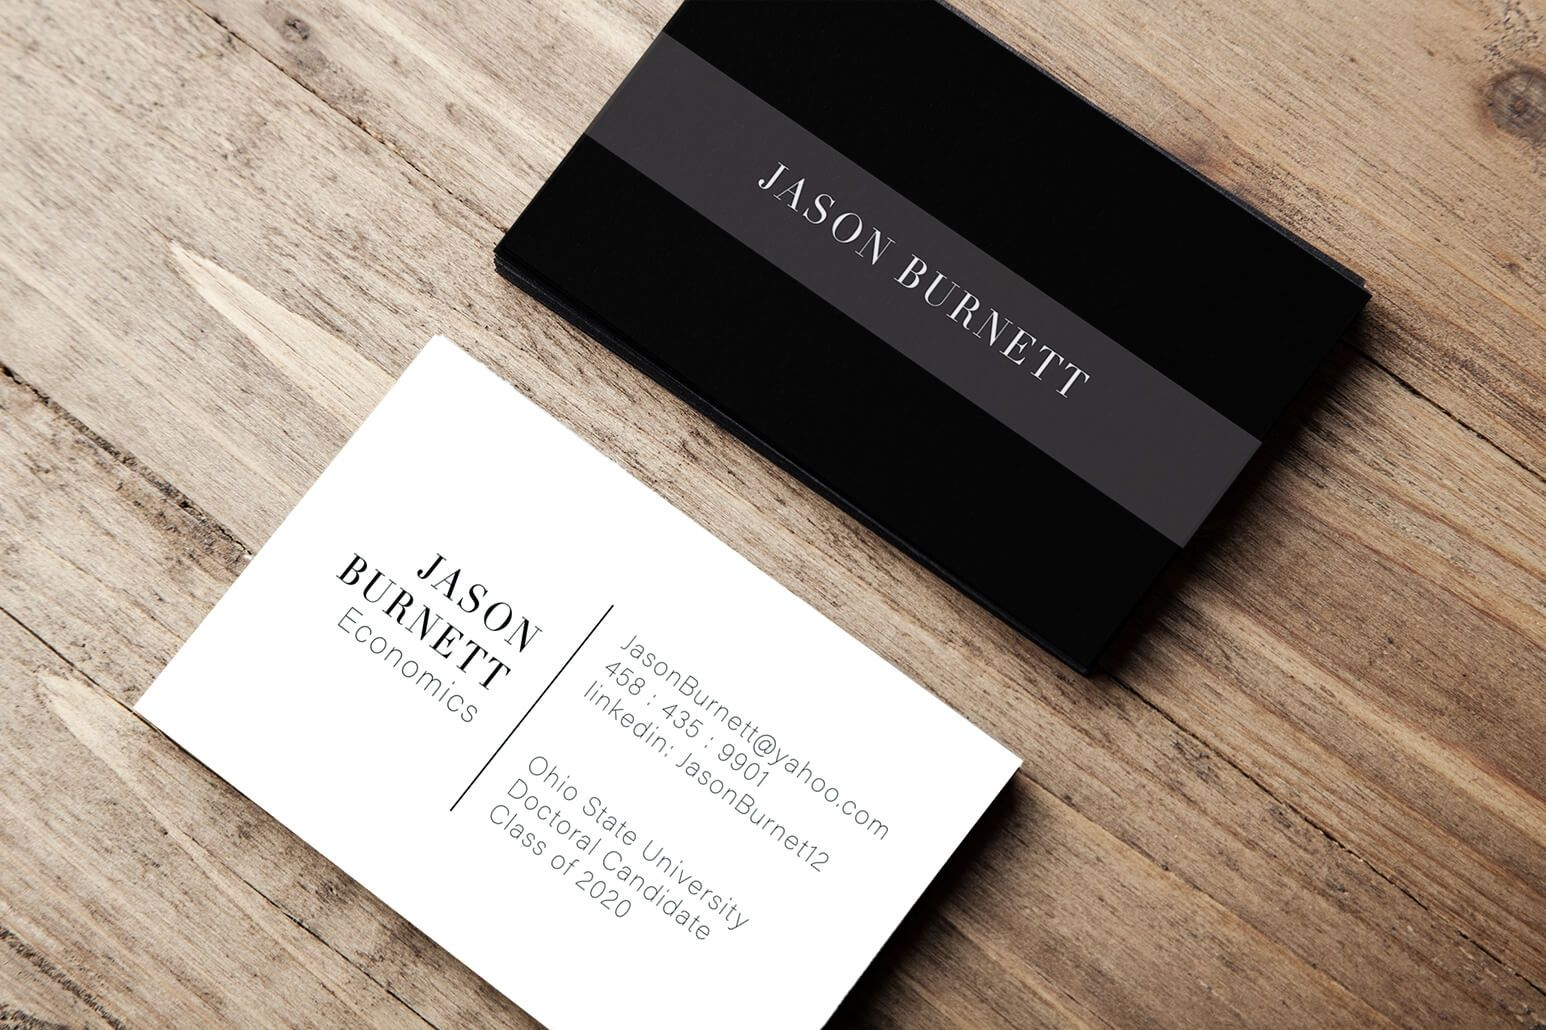 College Student Business Card Example Gallery Student Business Cards Examples Of Business Cards Personal Business Cards